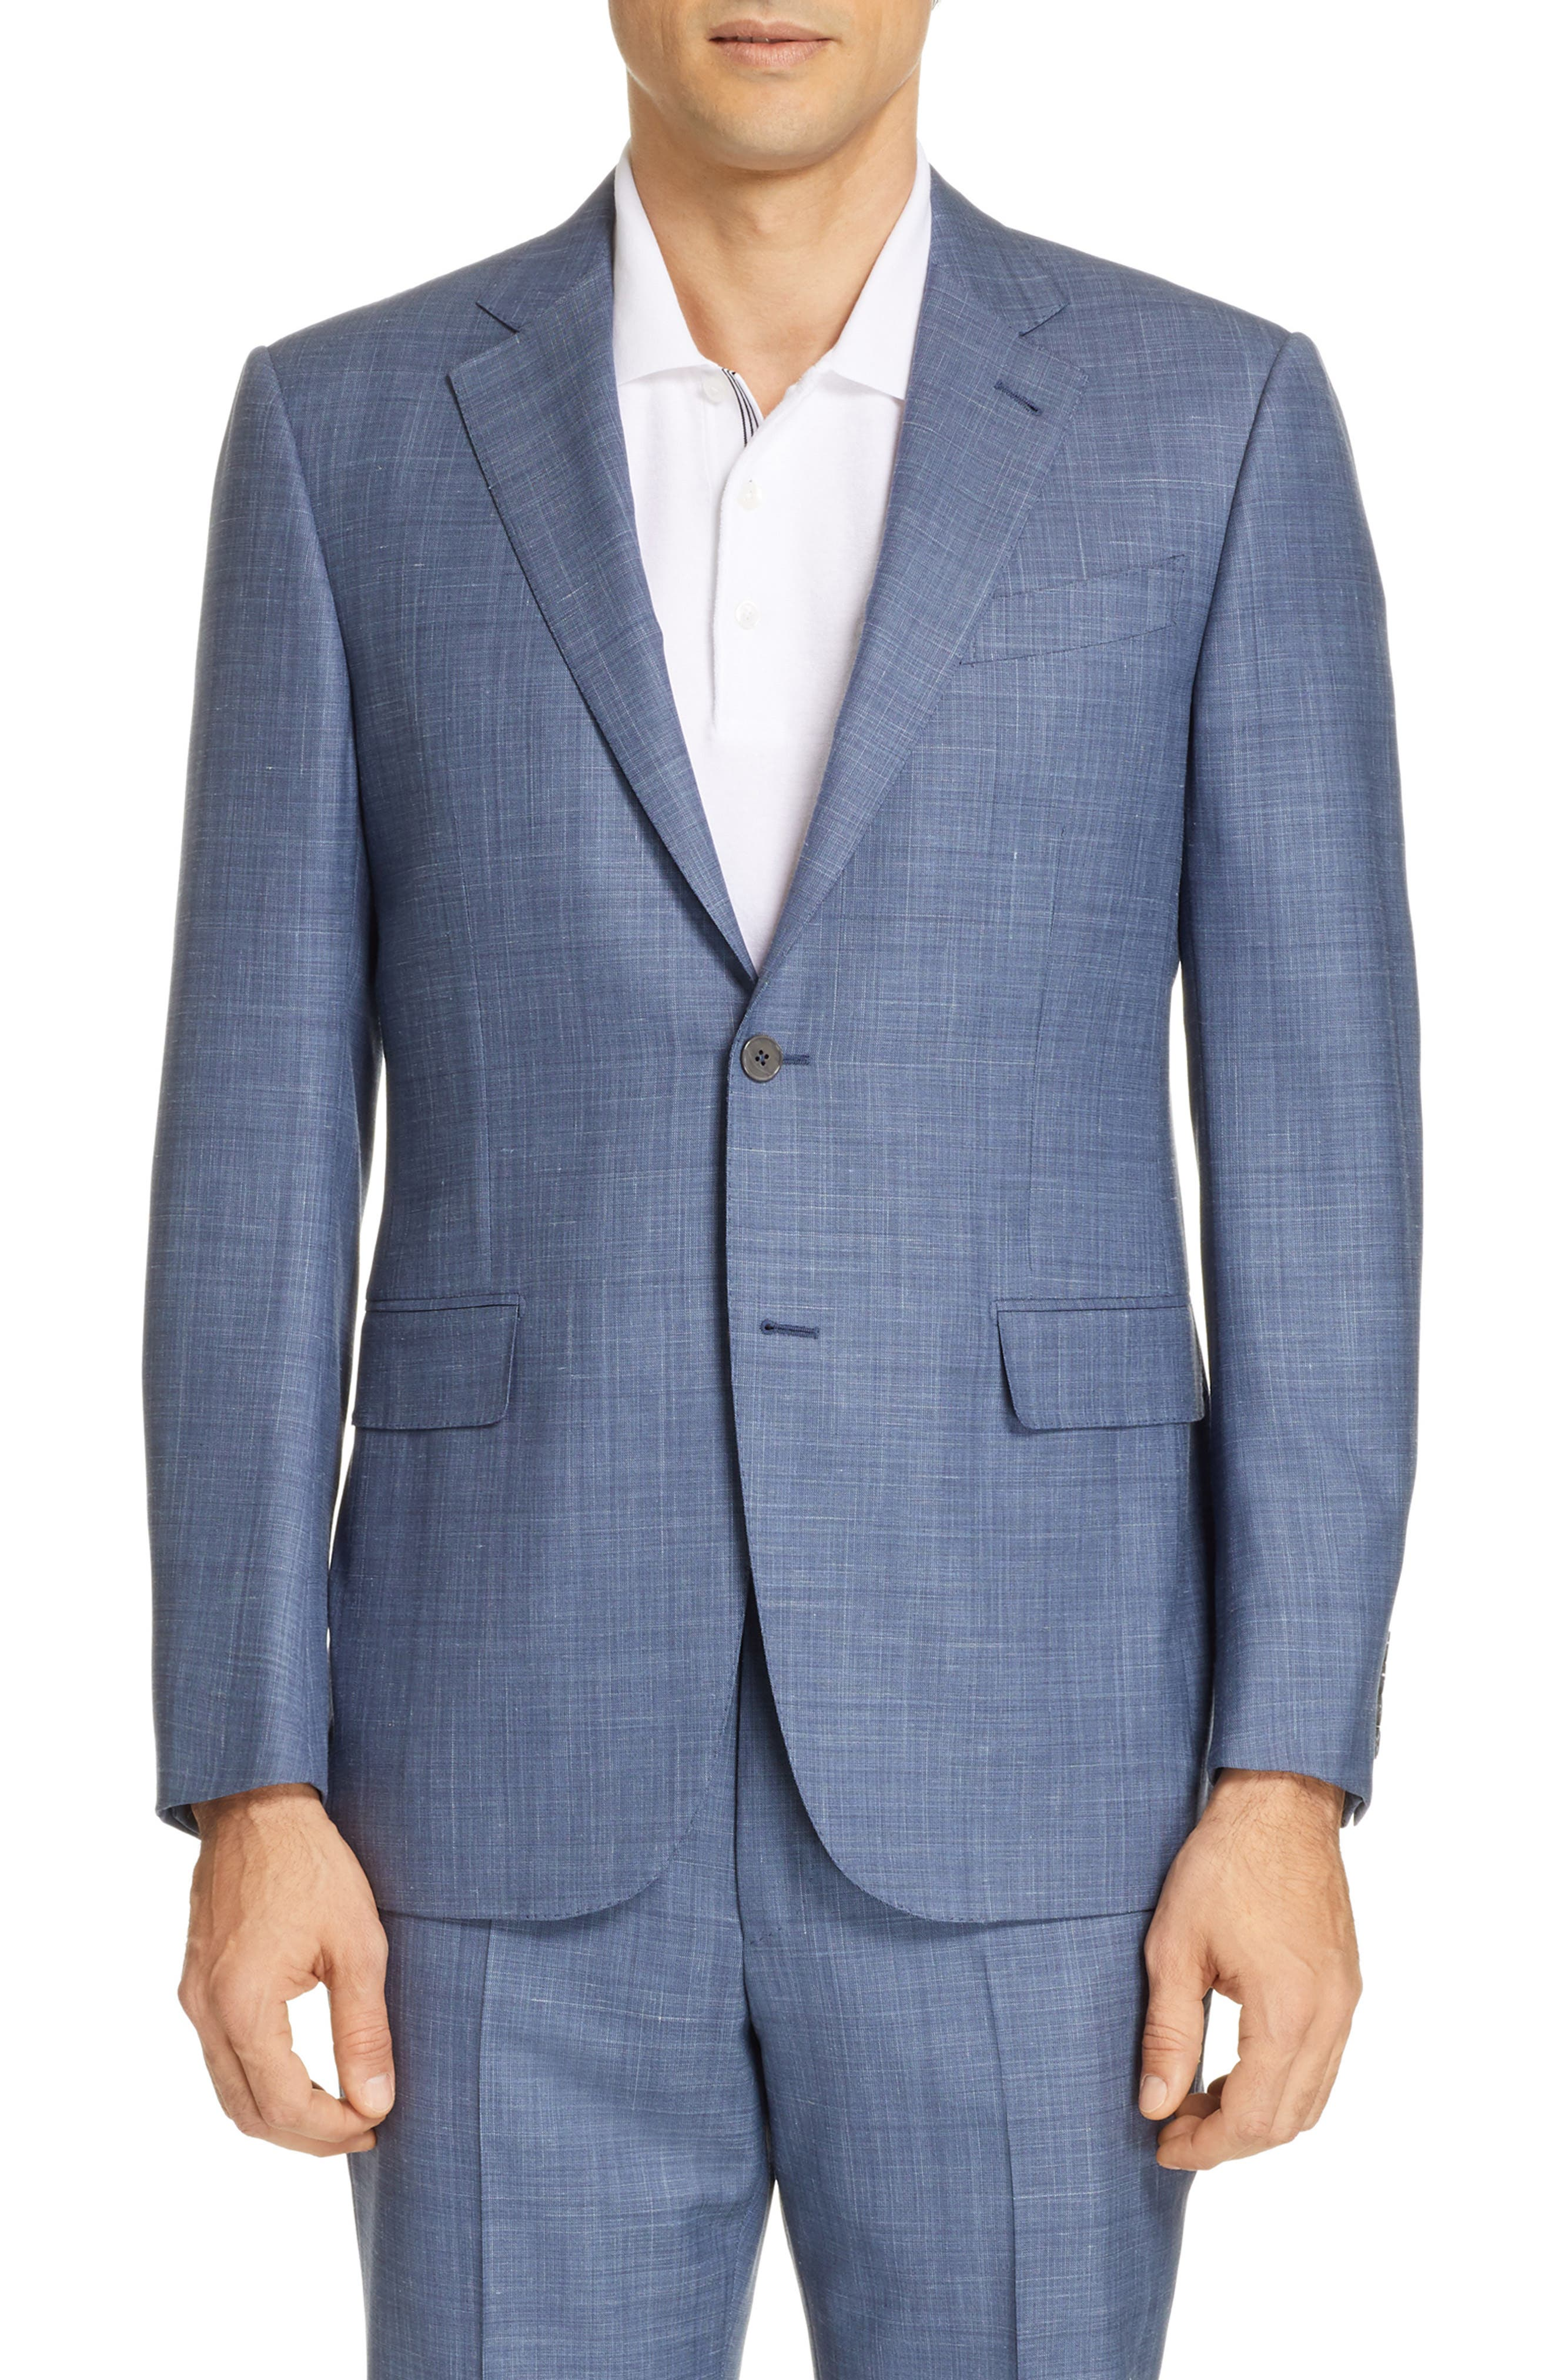 ERMENEGILDO ZEGNA, Trofeo Classic Fit Solid Wool Blend Suit, Alternate thumbnail 5, color, BLUE